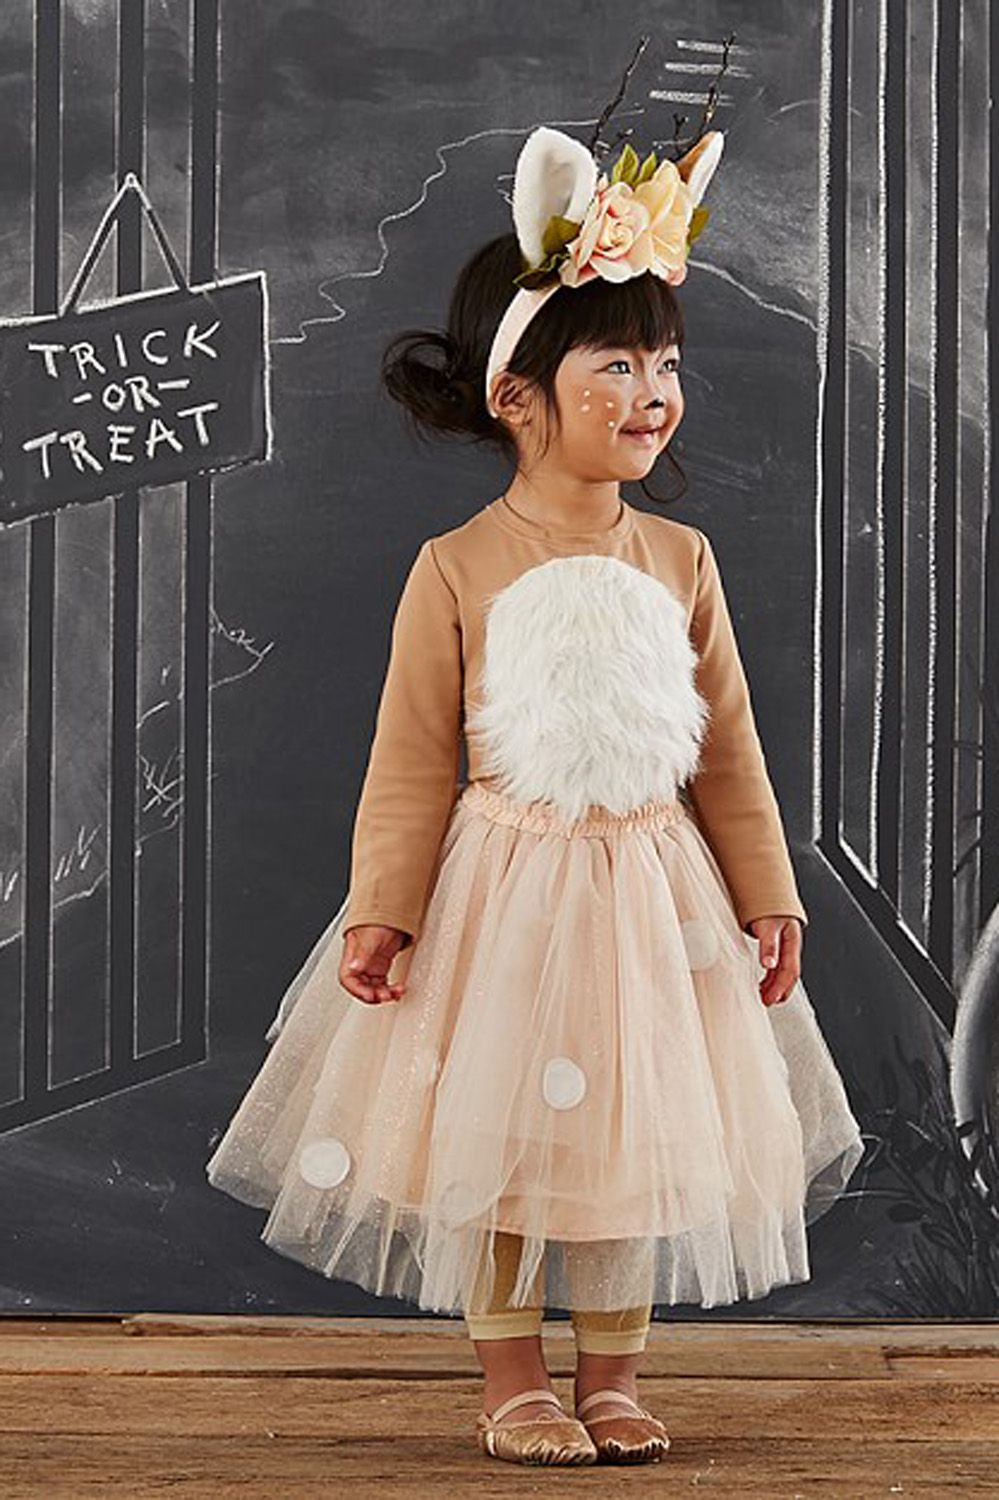 14 cute toddler halloween costumes - fun costume ideas for toddlers